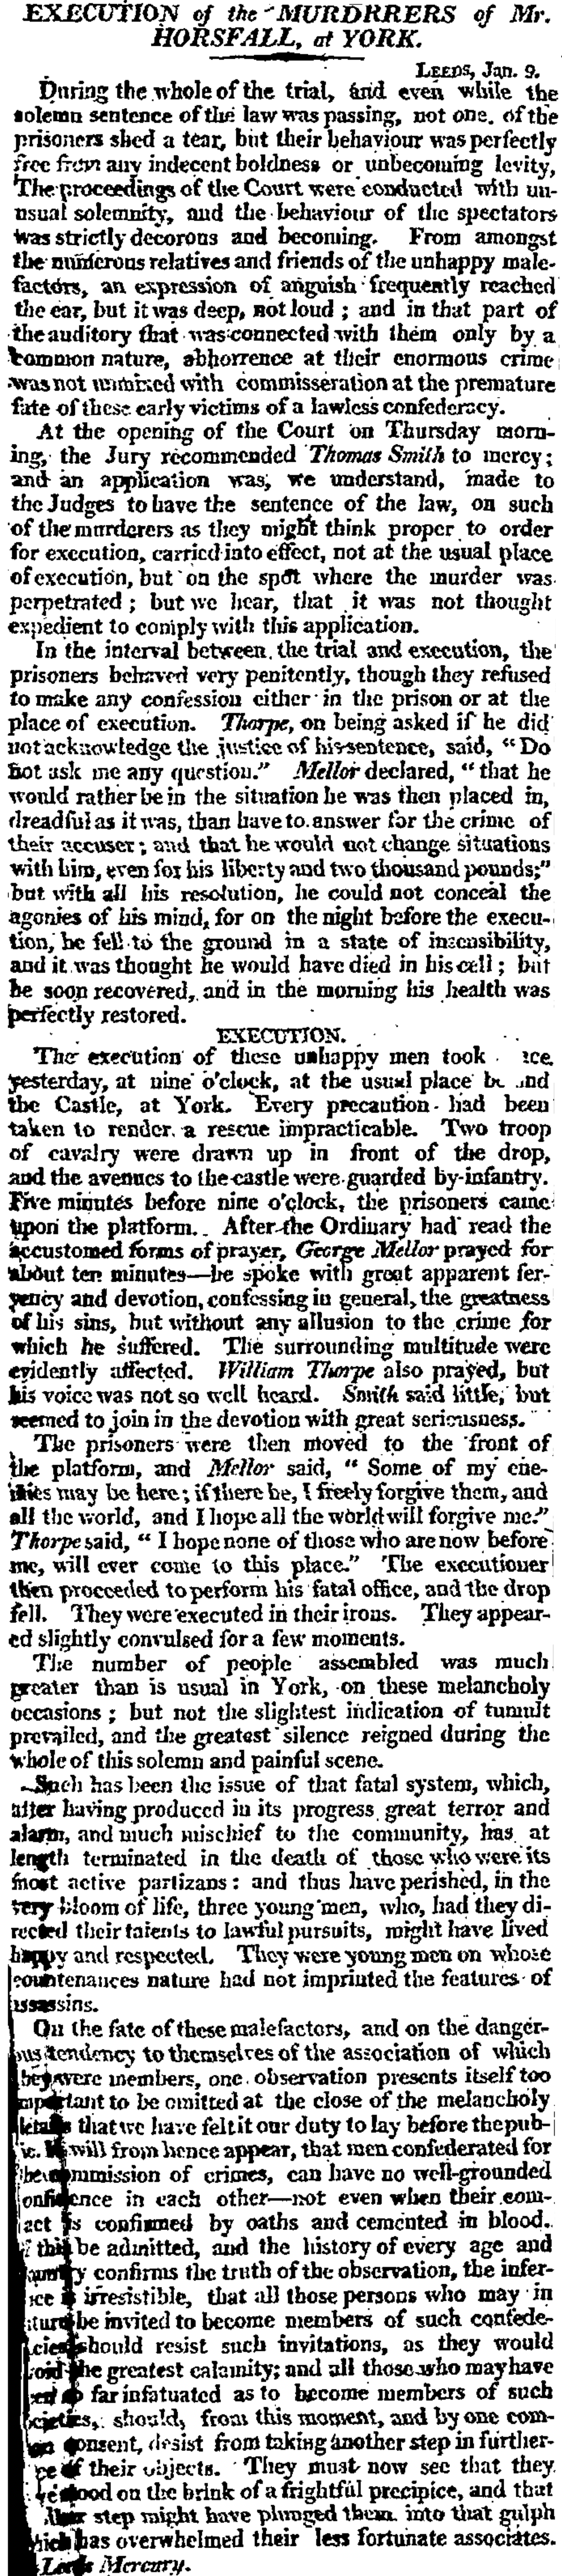 The-Times-12.Jan .1813-Execution-of-the-Murderers-of-Mr.-Horsfall.png